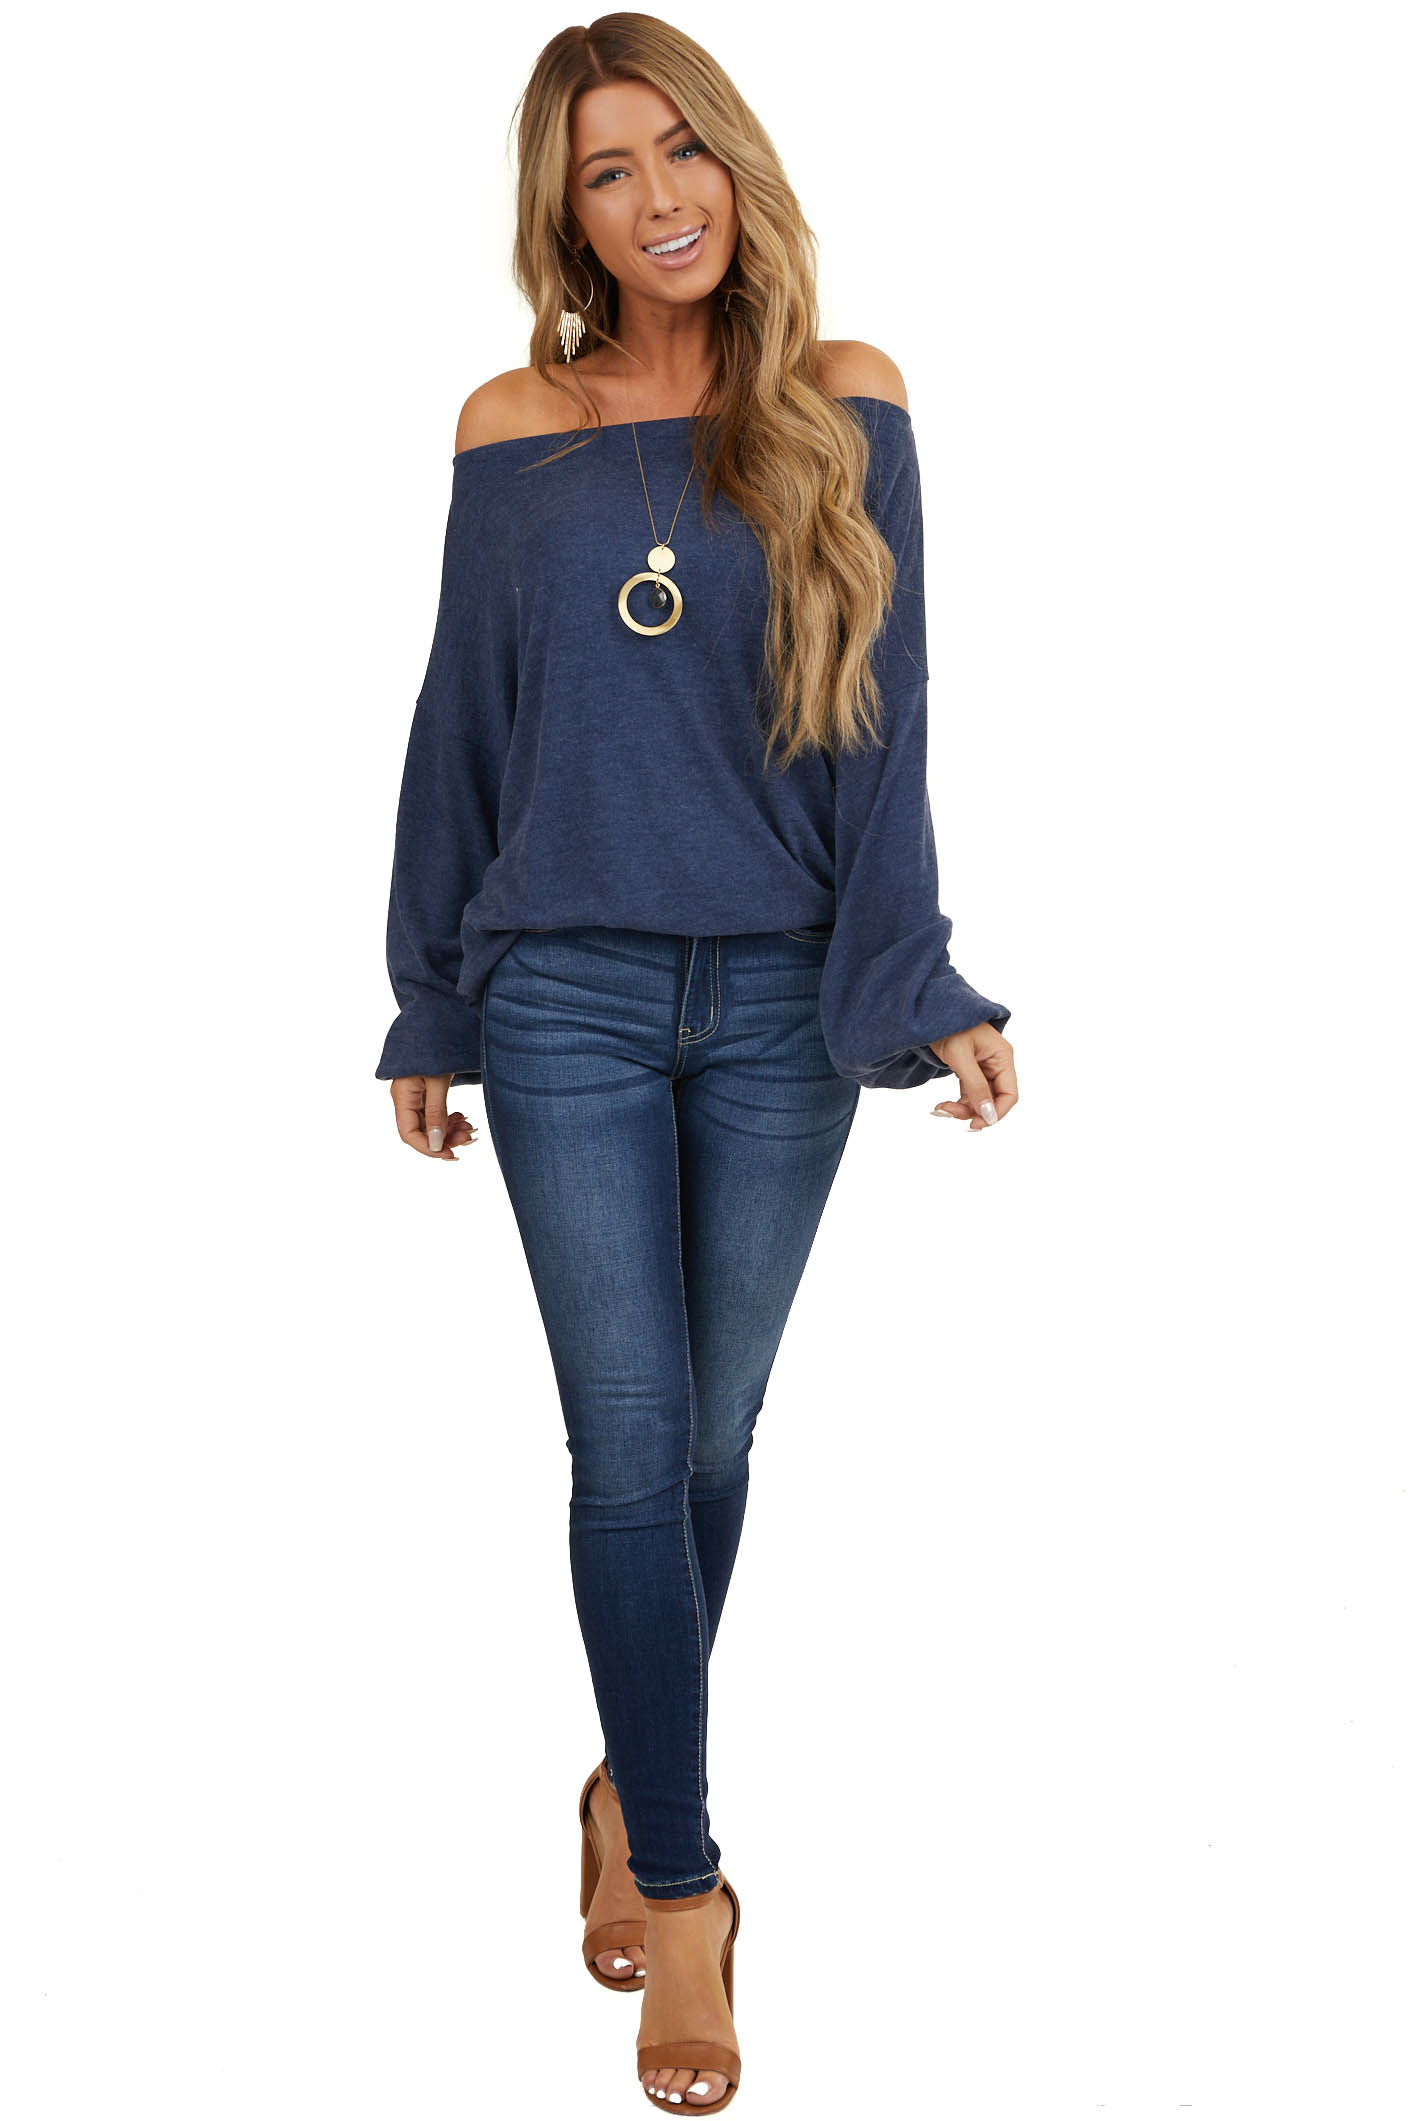 Heathered Dark Blue Off Shoulder Top with Bubble Sleeves